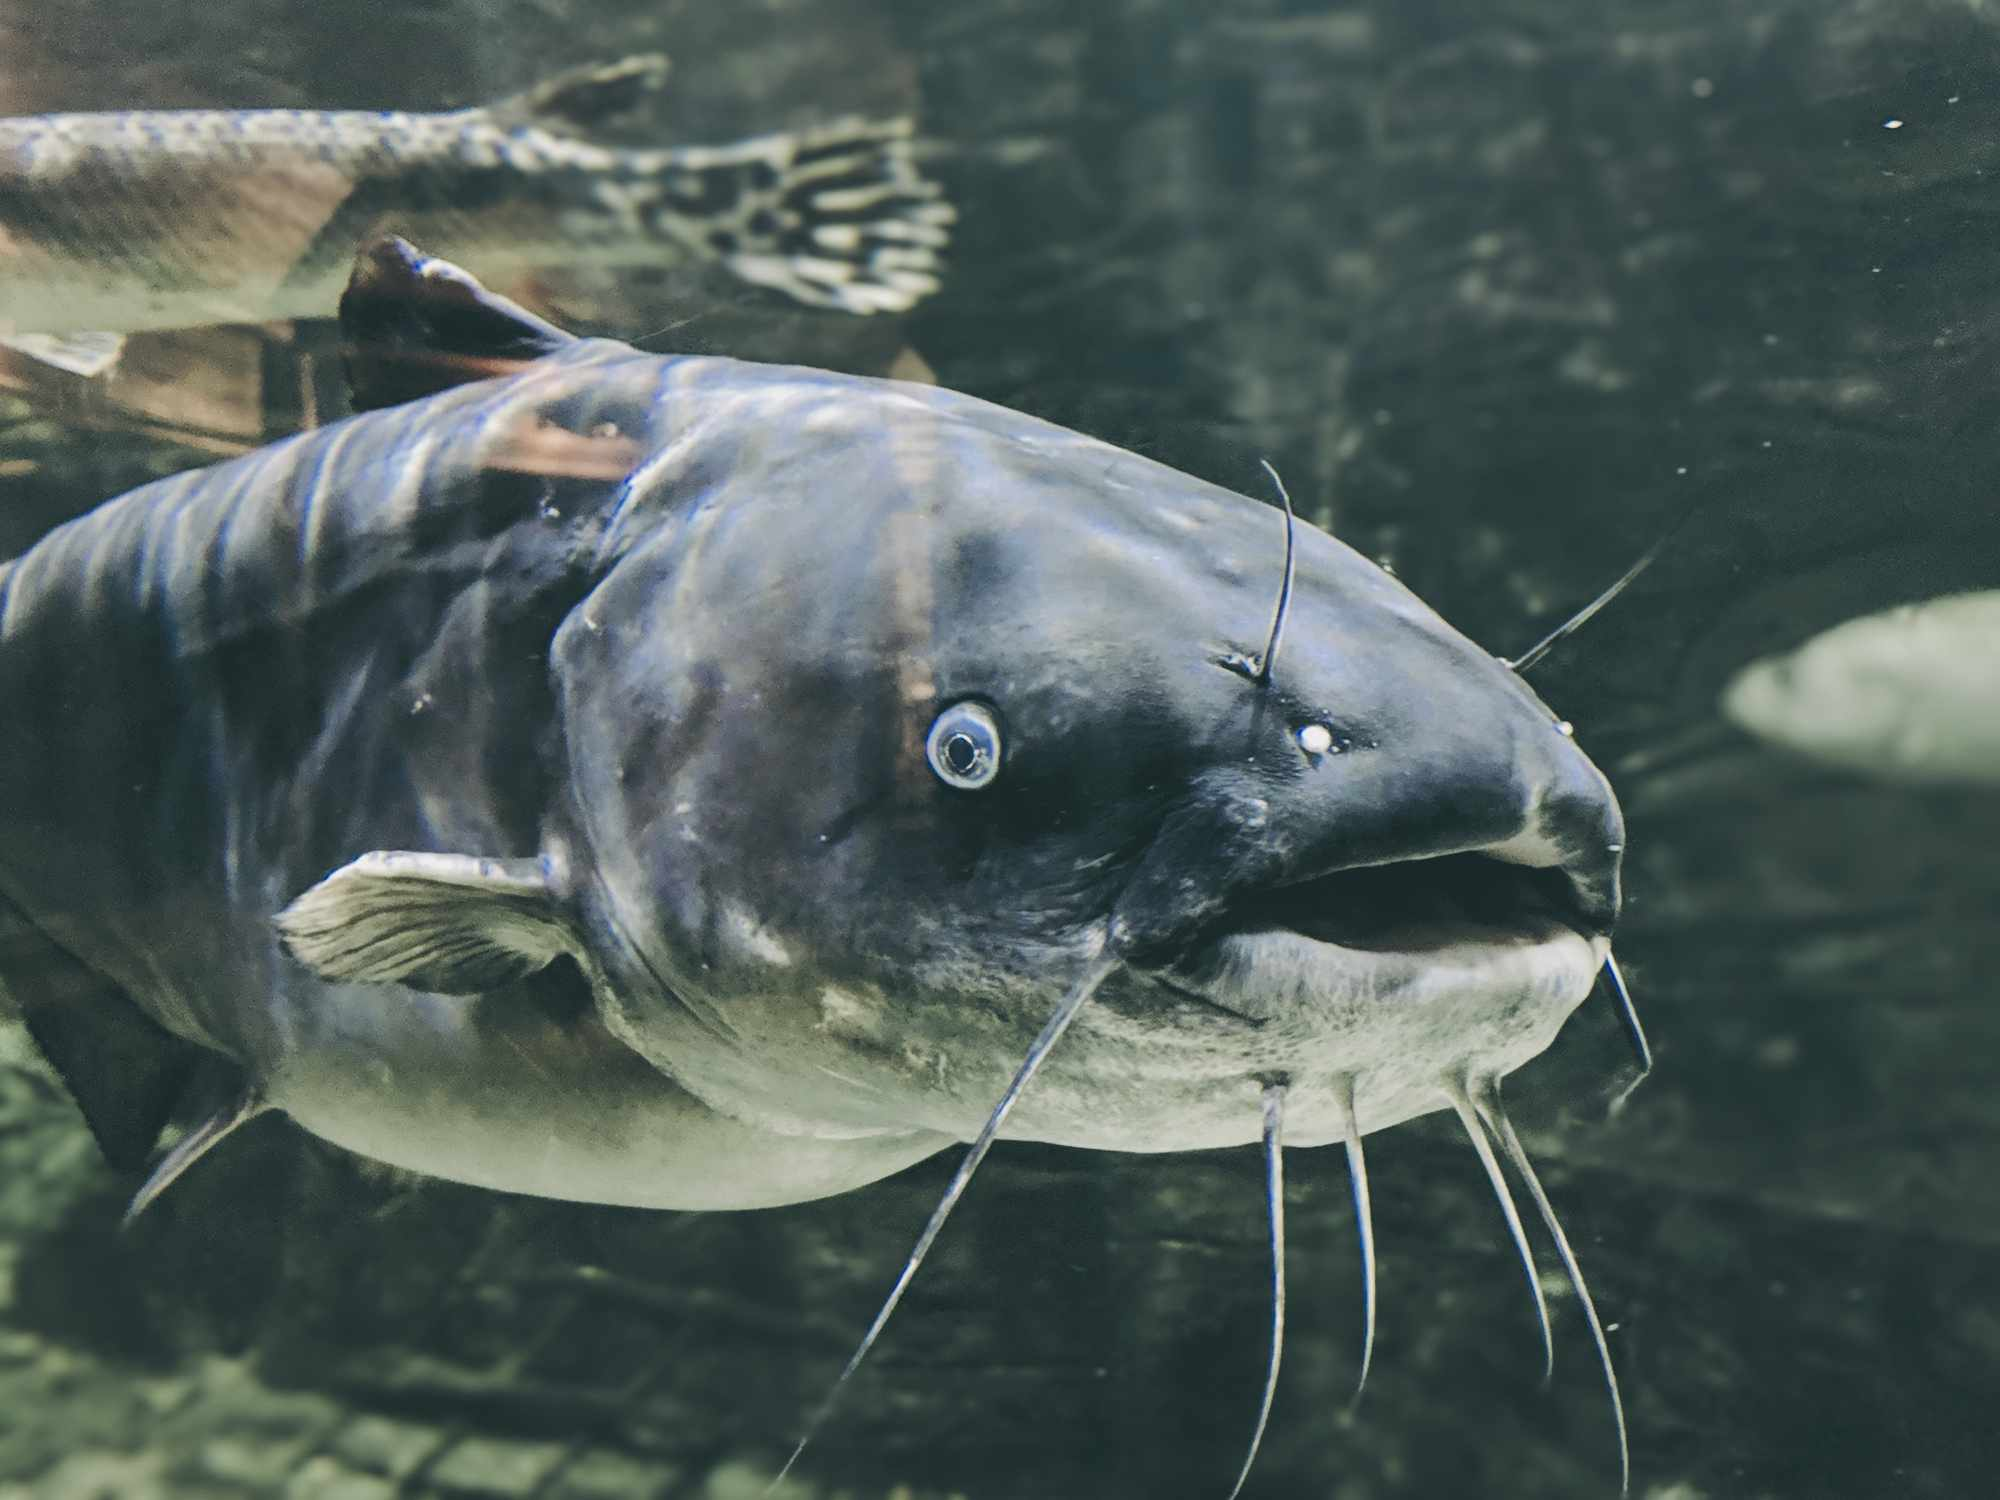 A large blue catfish just below the water's surface.